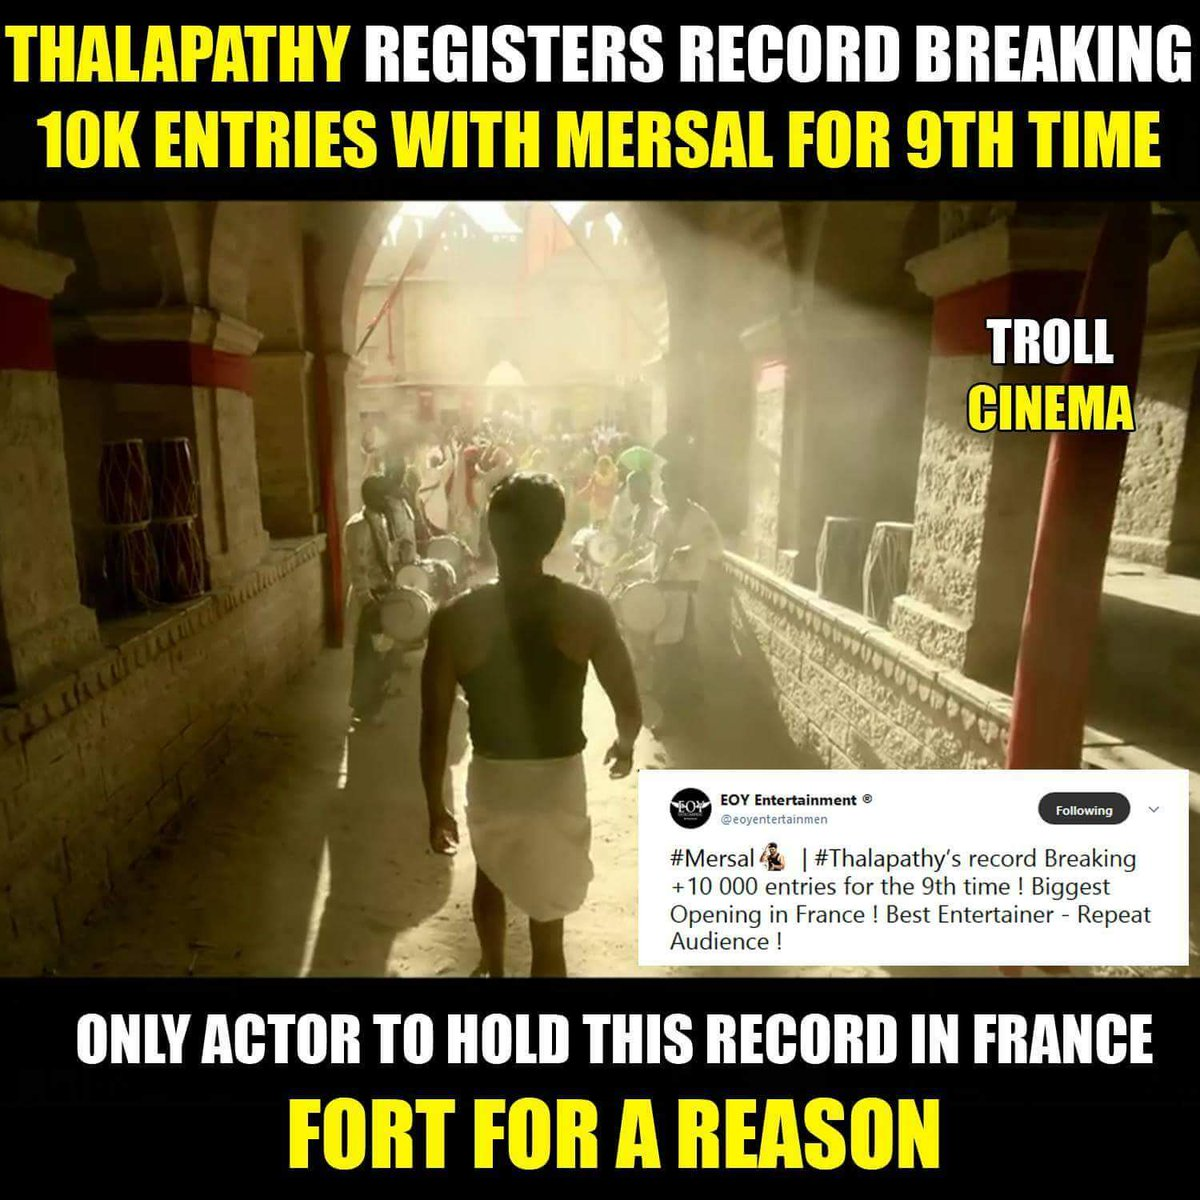 This is his 9th 10K entries in #France   Fort For A Reason ! #Mersal  #ThalapathyVijay #BlockbusterMersal <br>http://pic.twitter.com/bqXdNOUw4v